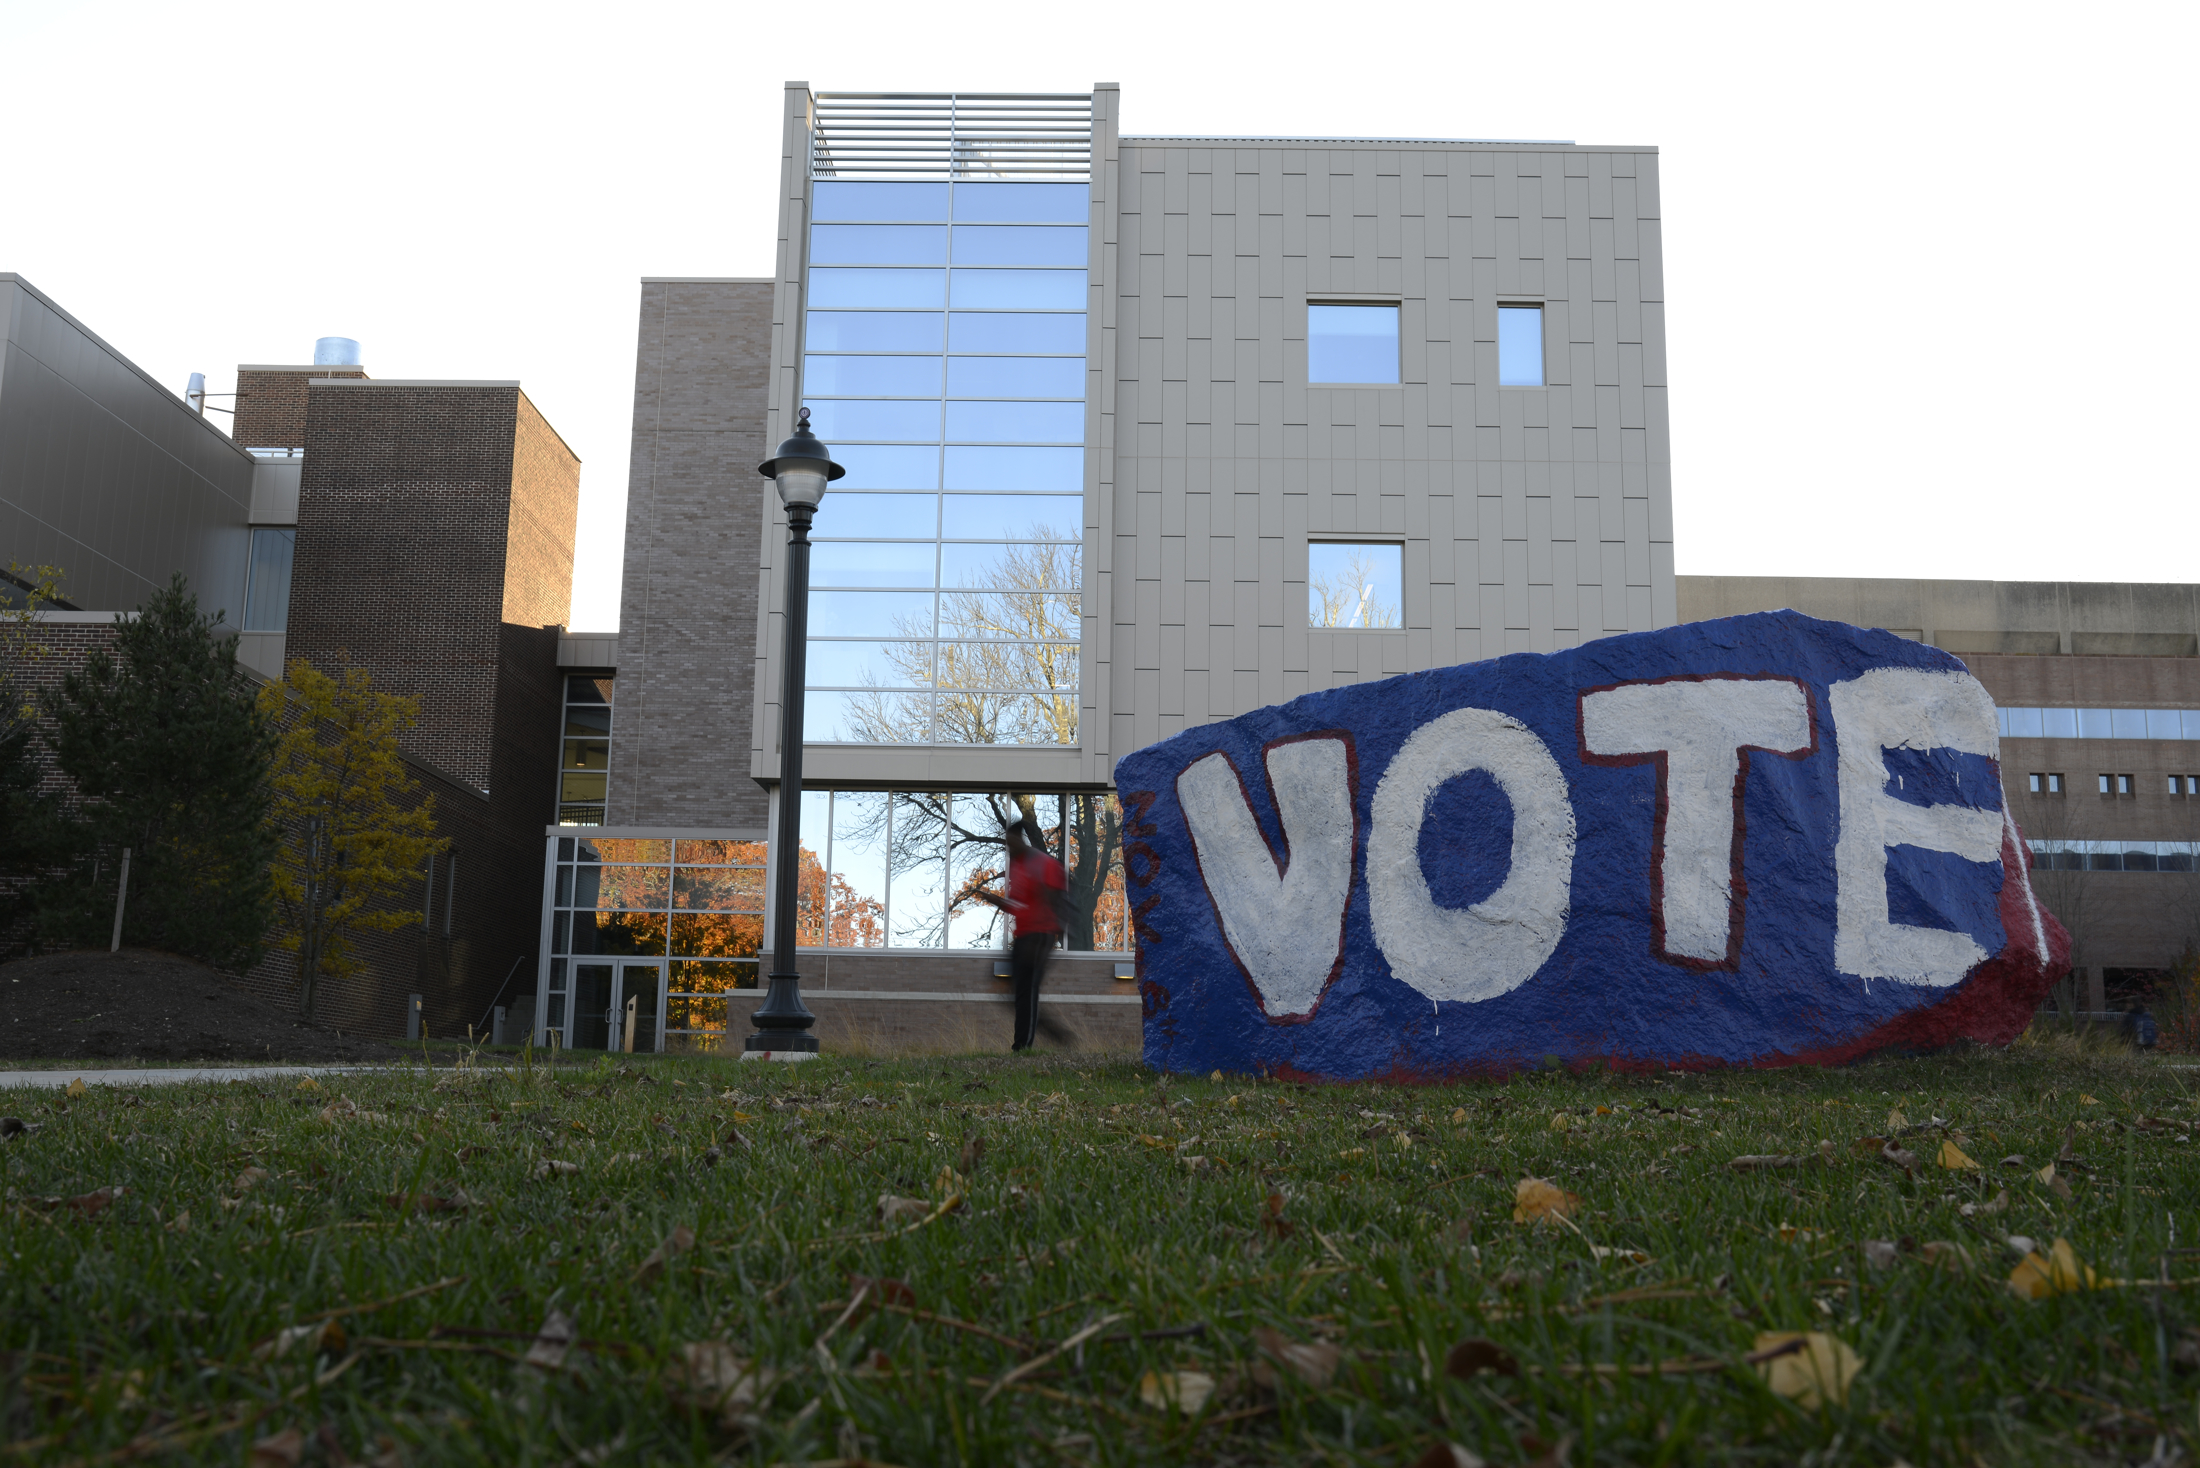 The University of Connecticut's Center for Voting Technology Research (VoTeR Center) is working to keep state elections fair and fraud free, a topic recently brought to light by Secretary of State Denise Merrill in a statement released Friday. (Jason Jiang/The Daily Campus)